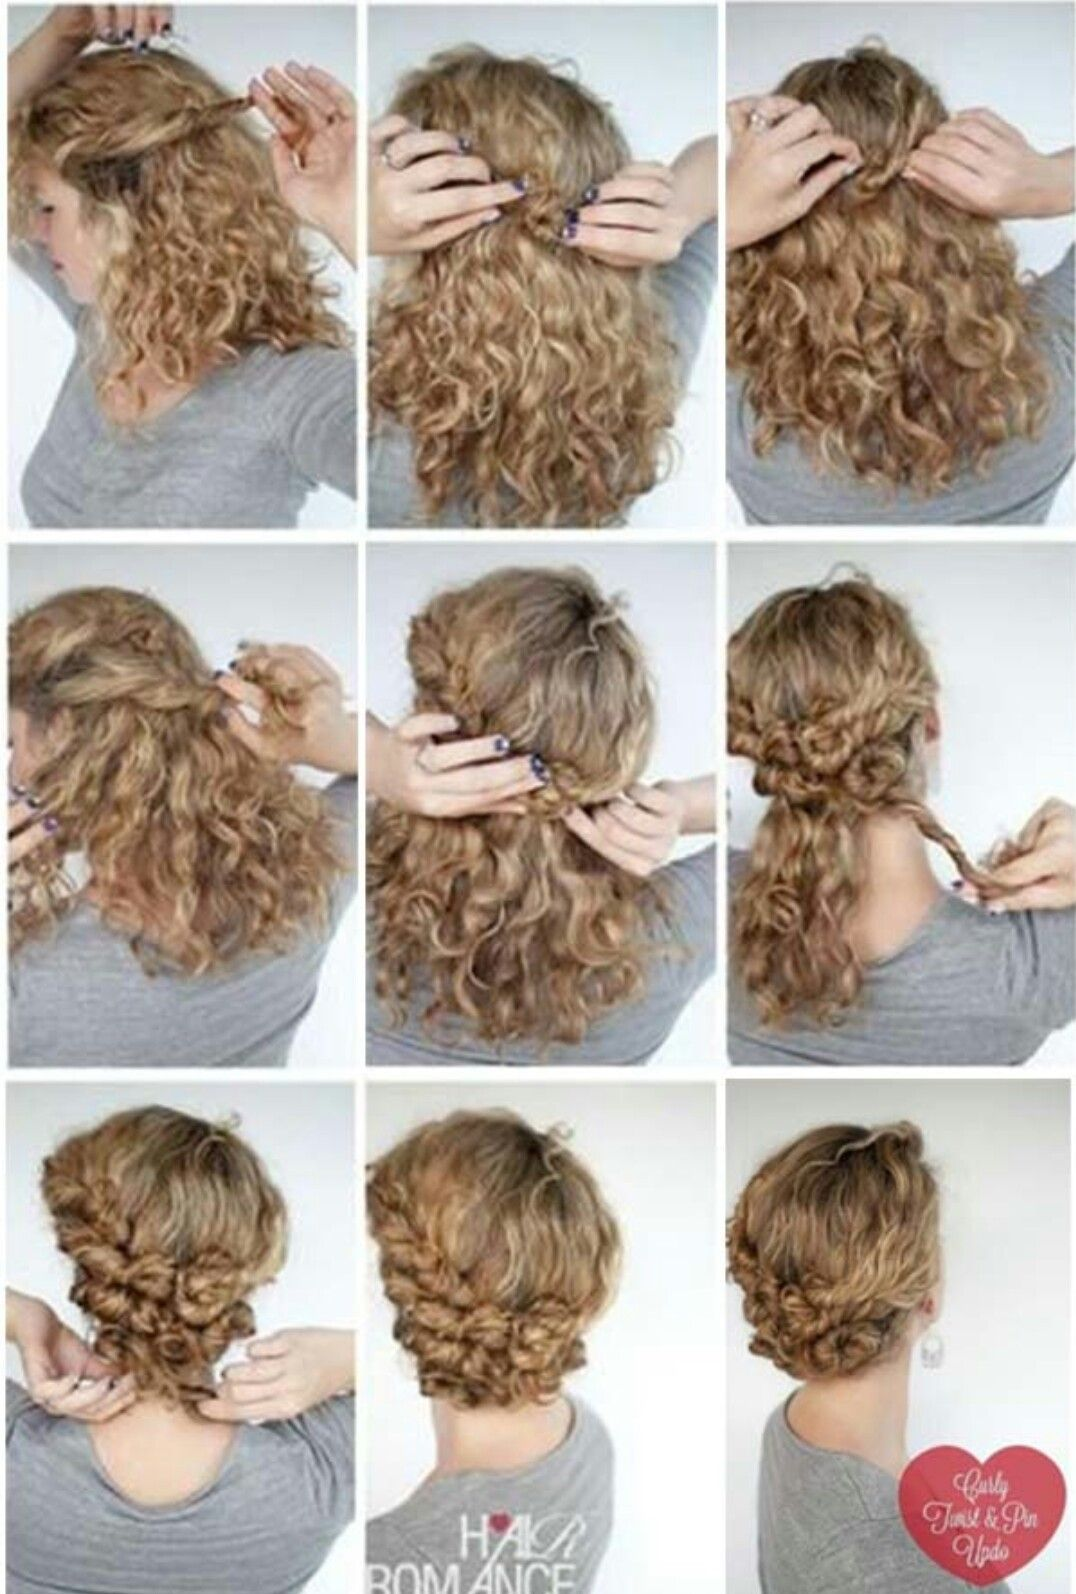 I Really Need To Learn How To Do Some More Styles Curly Hair Styles Naturally Curly Hair Up Curly Hair Styles